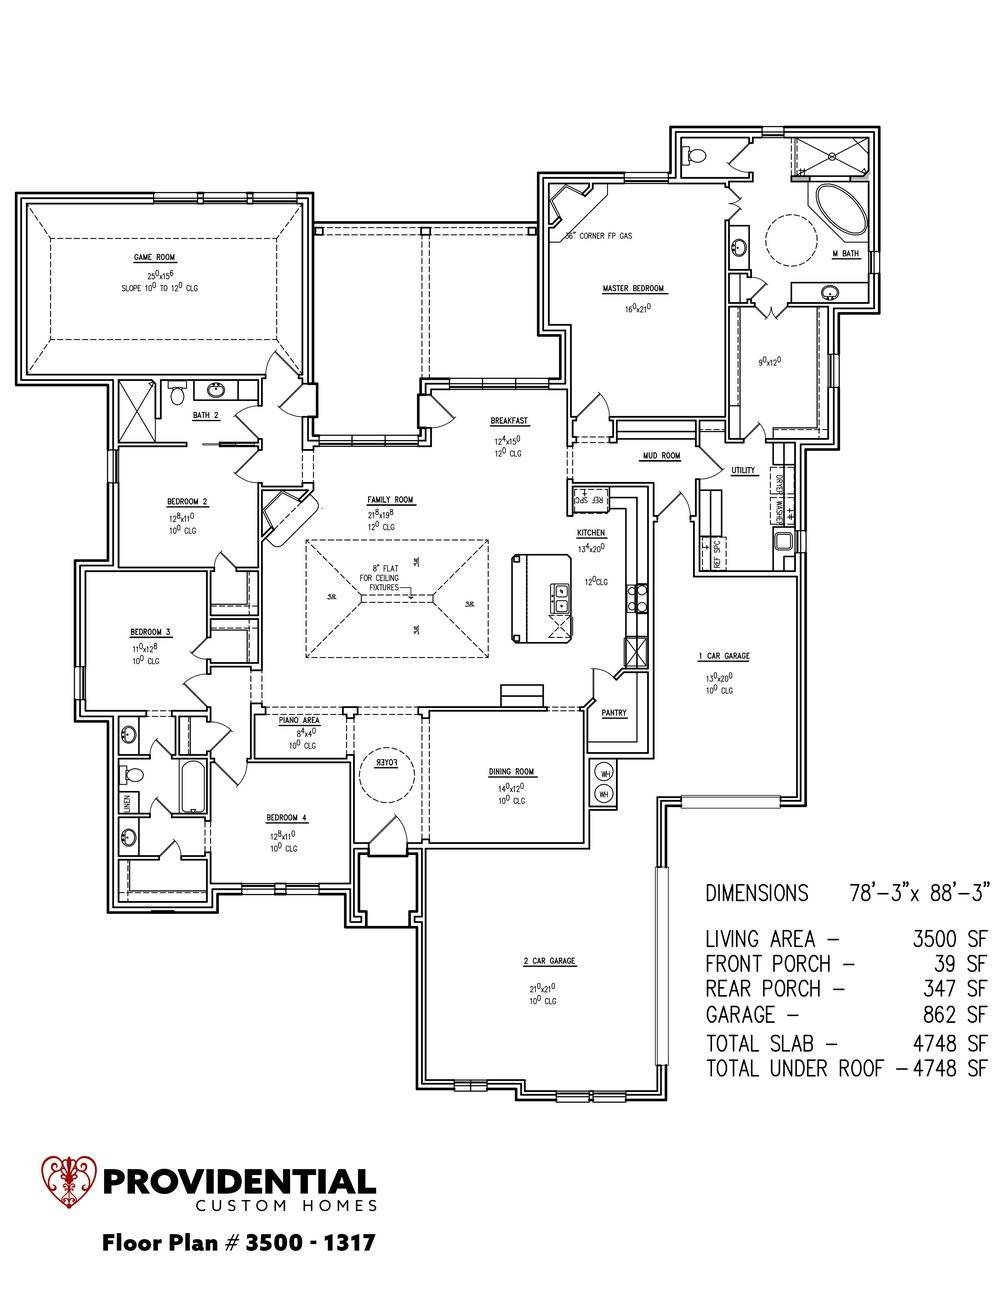 The FLOOR PLAN #3500 - 1317.jpg